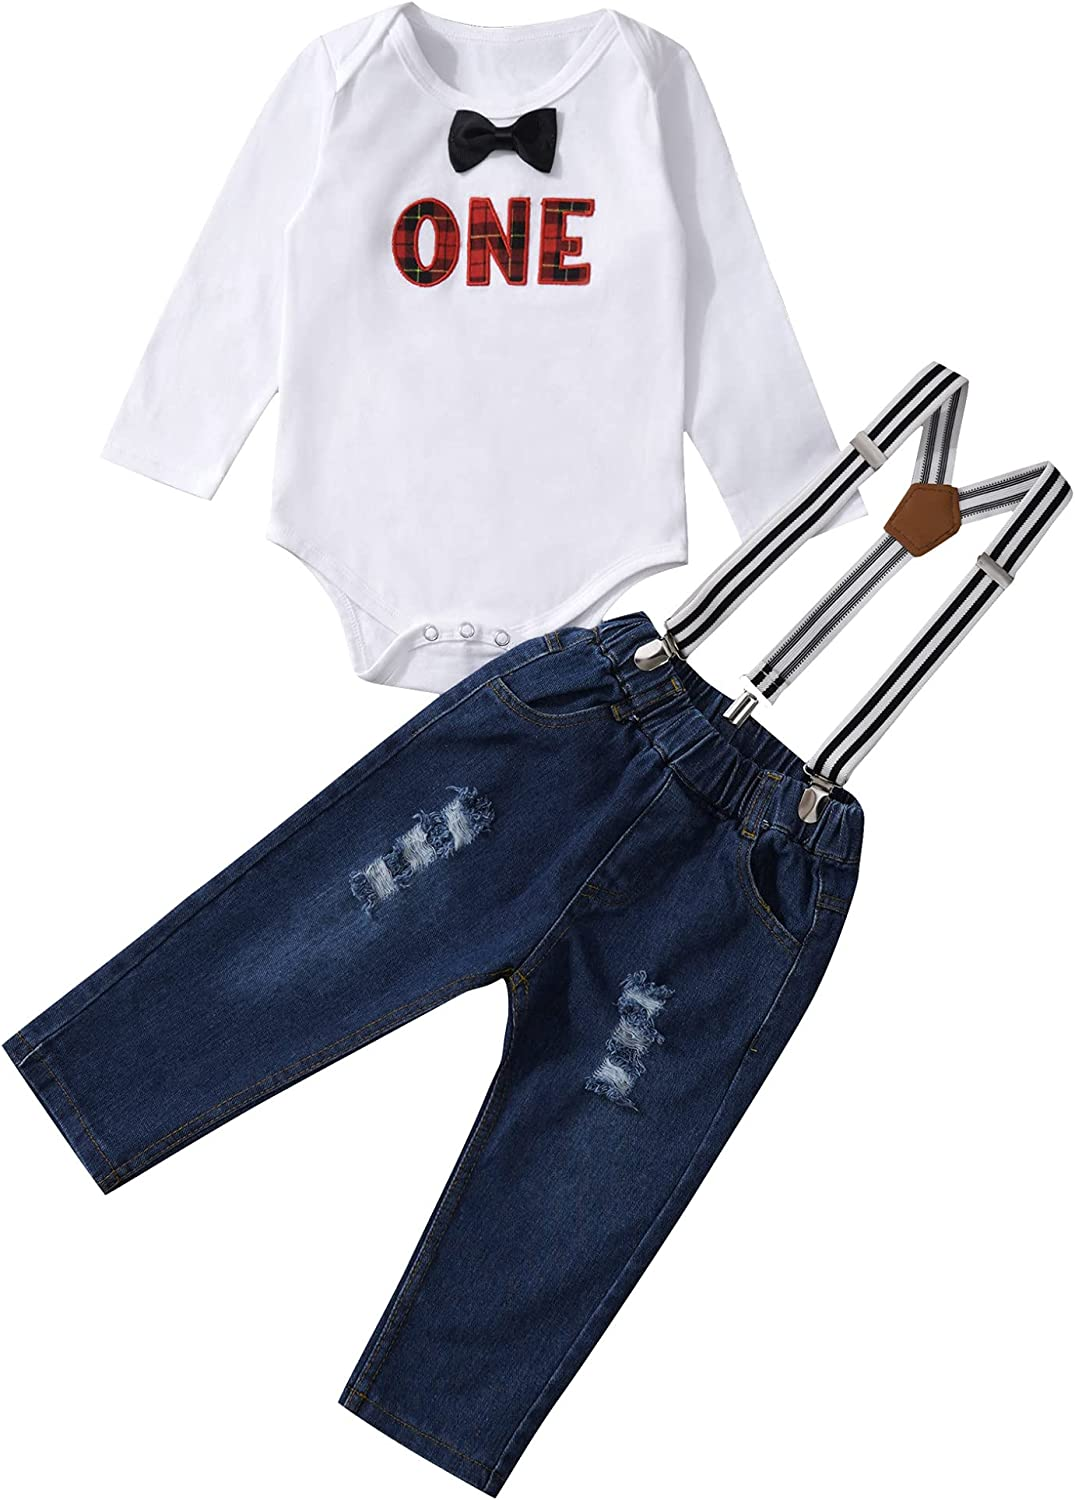 Today's only QinCiao Baby Toddler Boys First Sleeve Birthday Outfits Max 72% OFF Ba Short